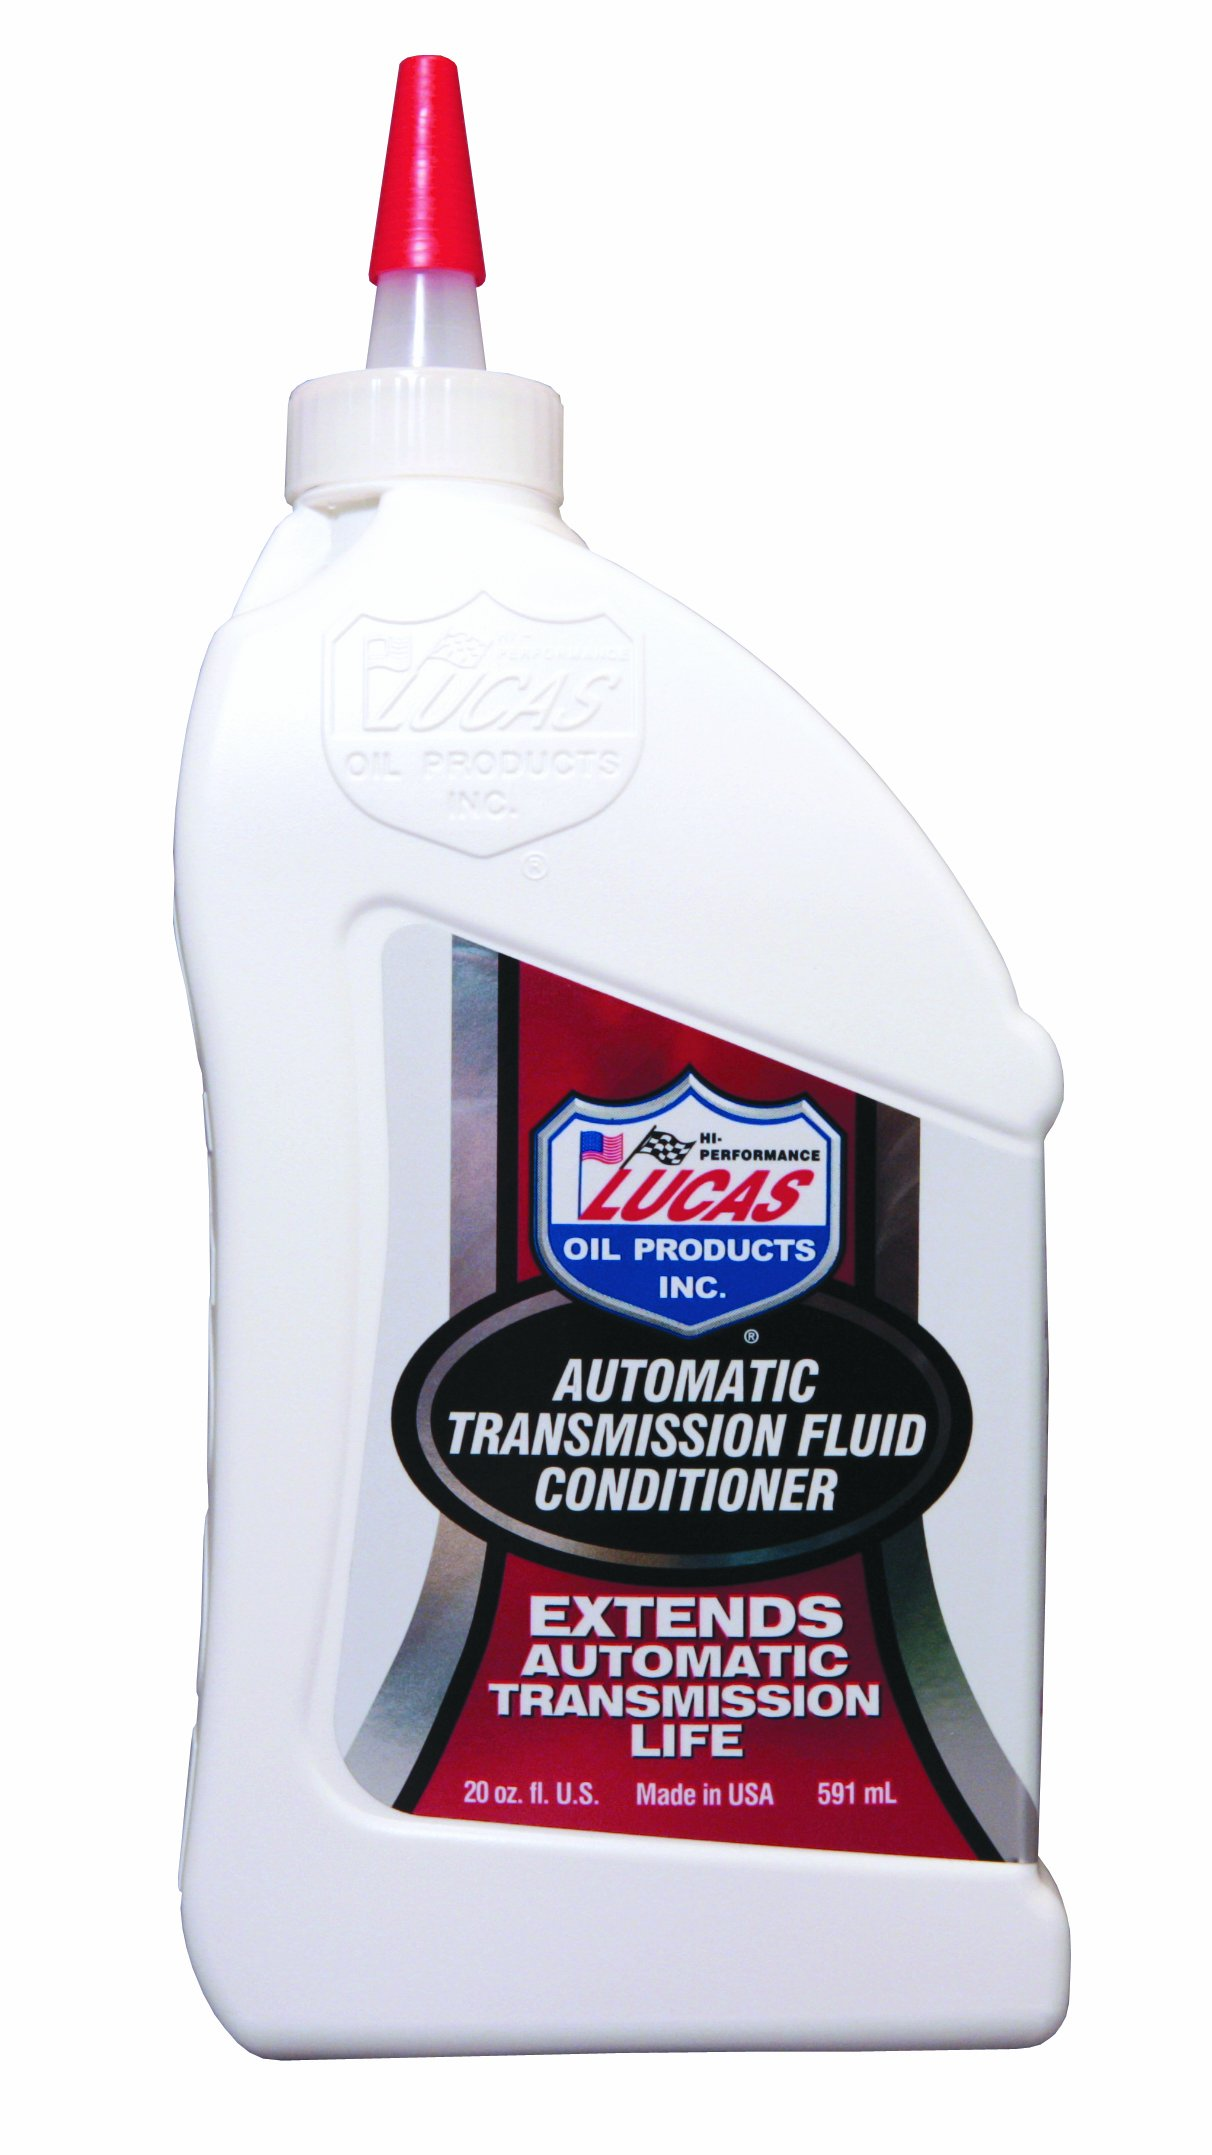 Lucas Oil 10441-12PK Automatic Transmission Fluid Conditioner - 20 oz., (Case of 12) by Lucas Oil